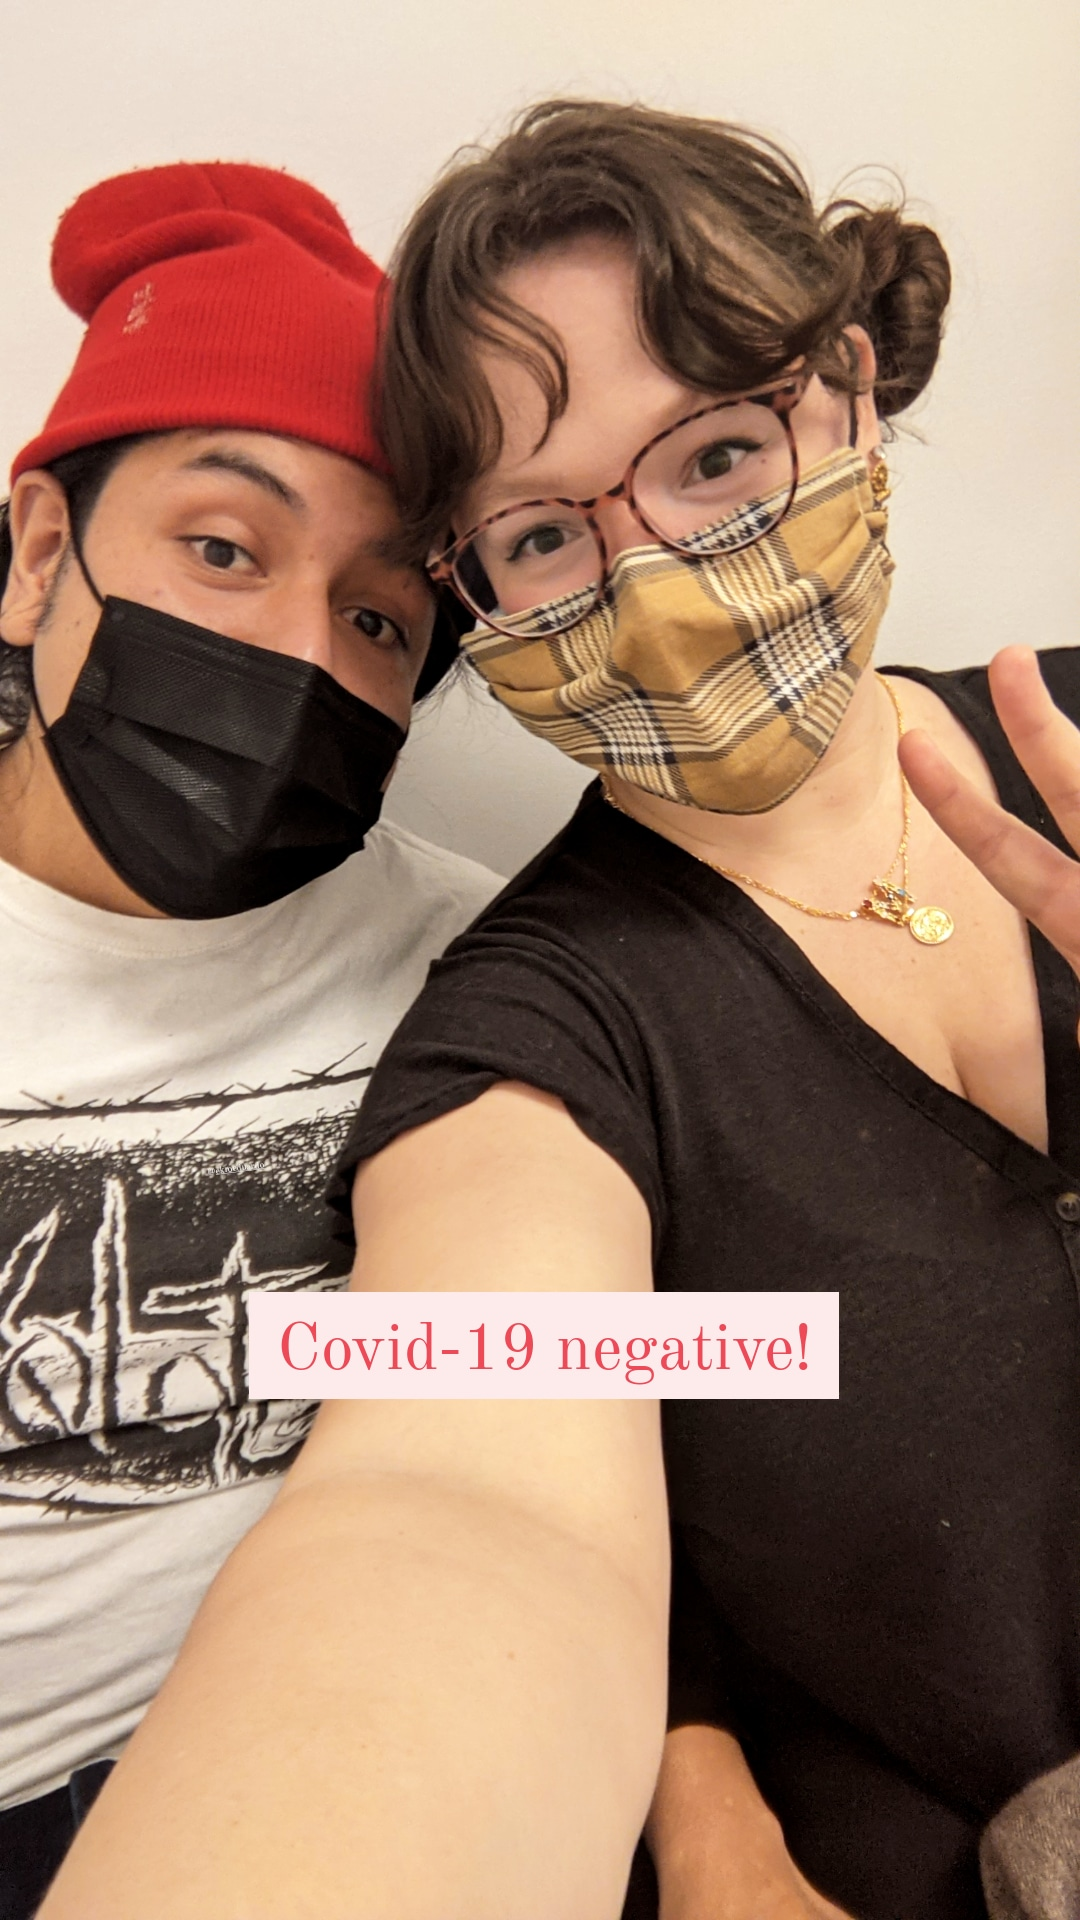 march-vlog-testing-positive-for-covid-19_NYC-hey-mishka-blog (2)